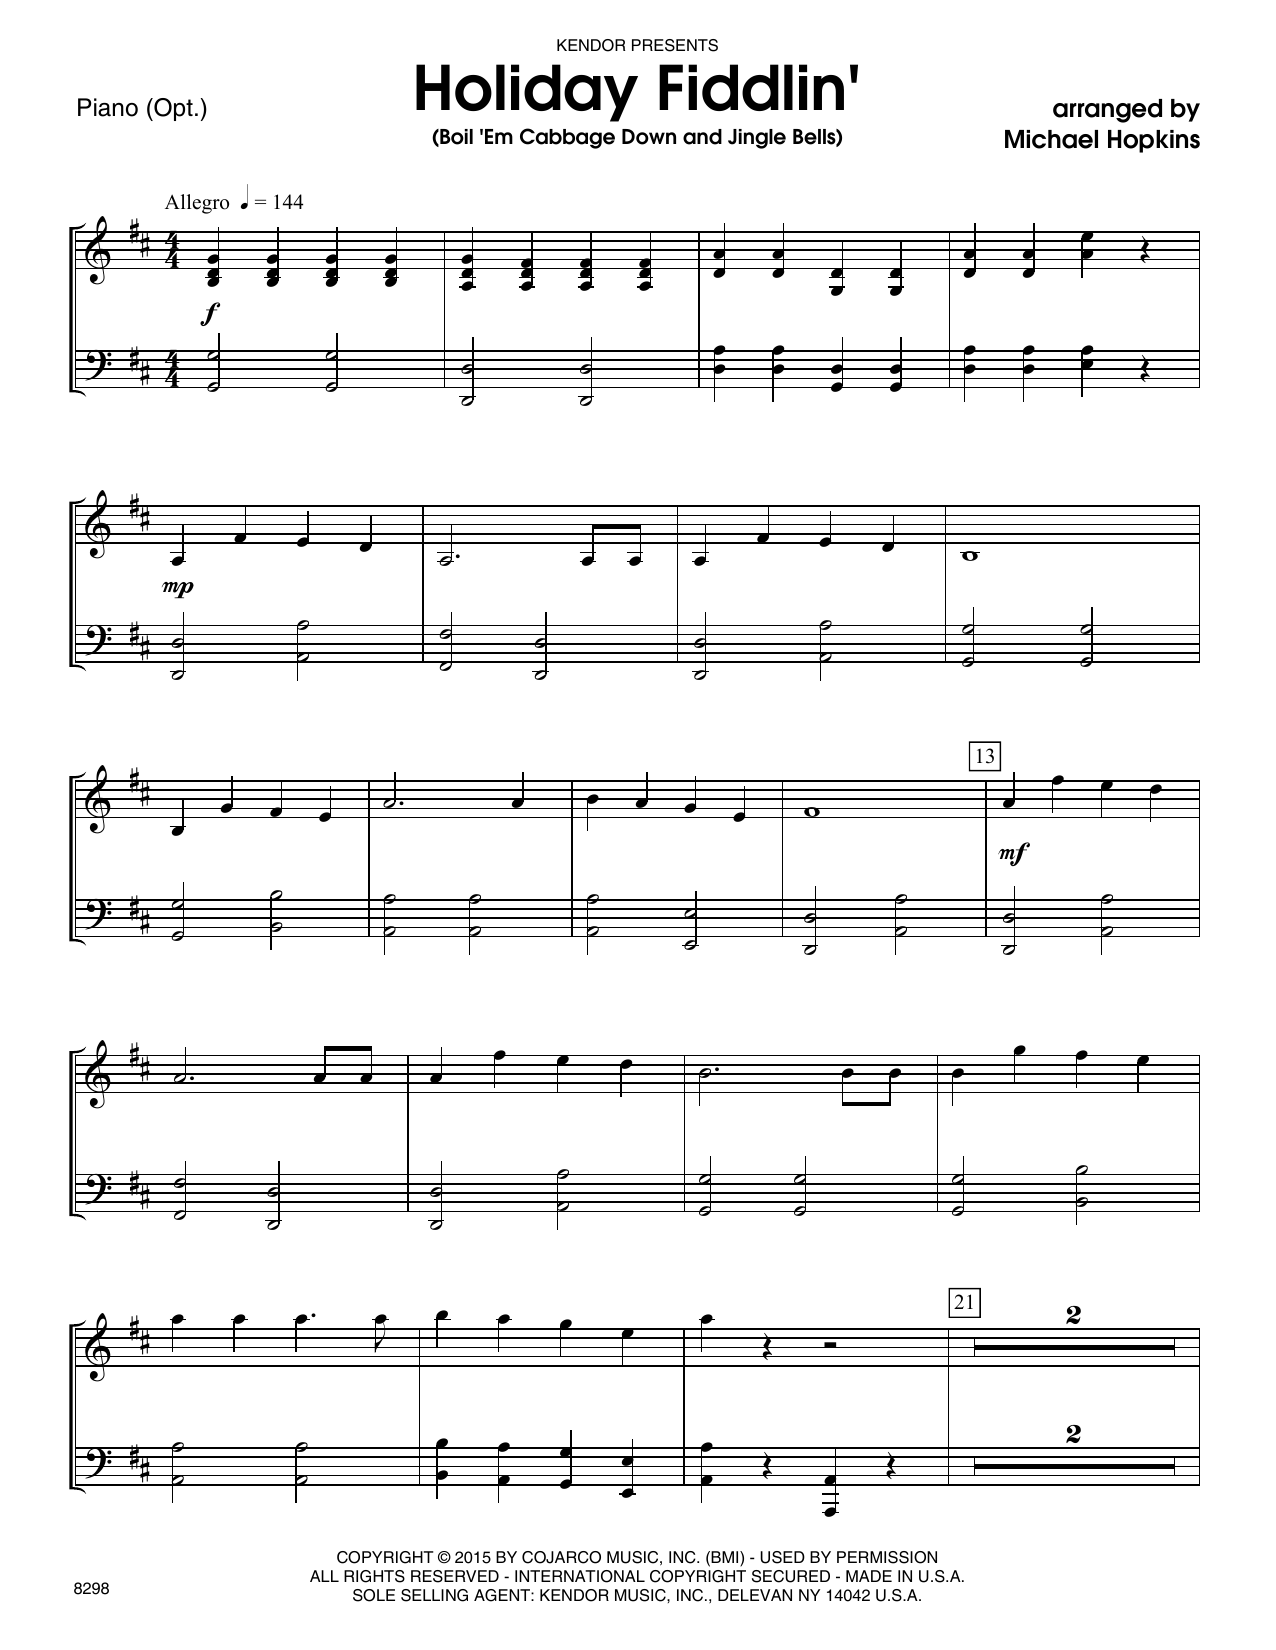 Holiday Fiddlin' (Boil 'Em Cabbage Down and Jingle Bells) - Piano Accompaniment Sheet Music